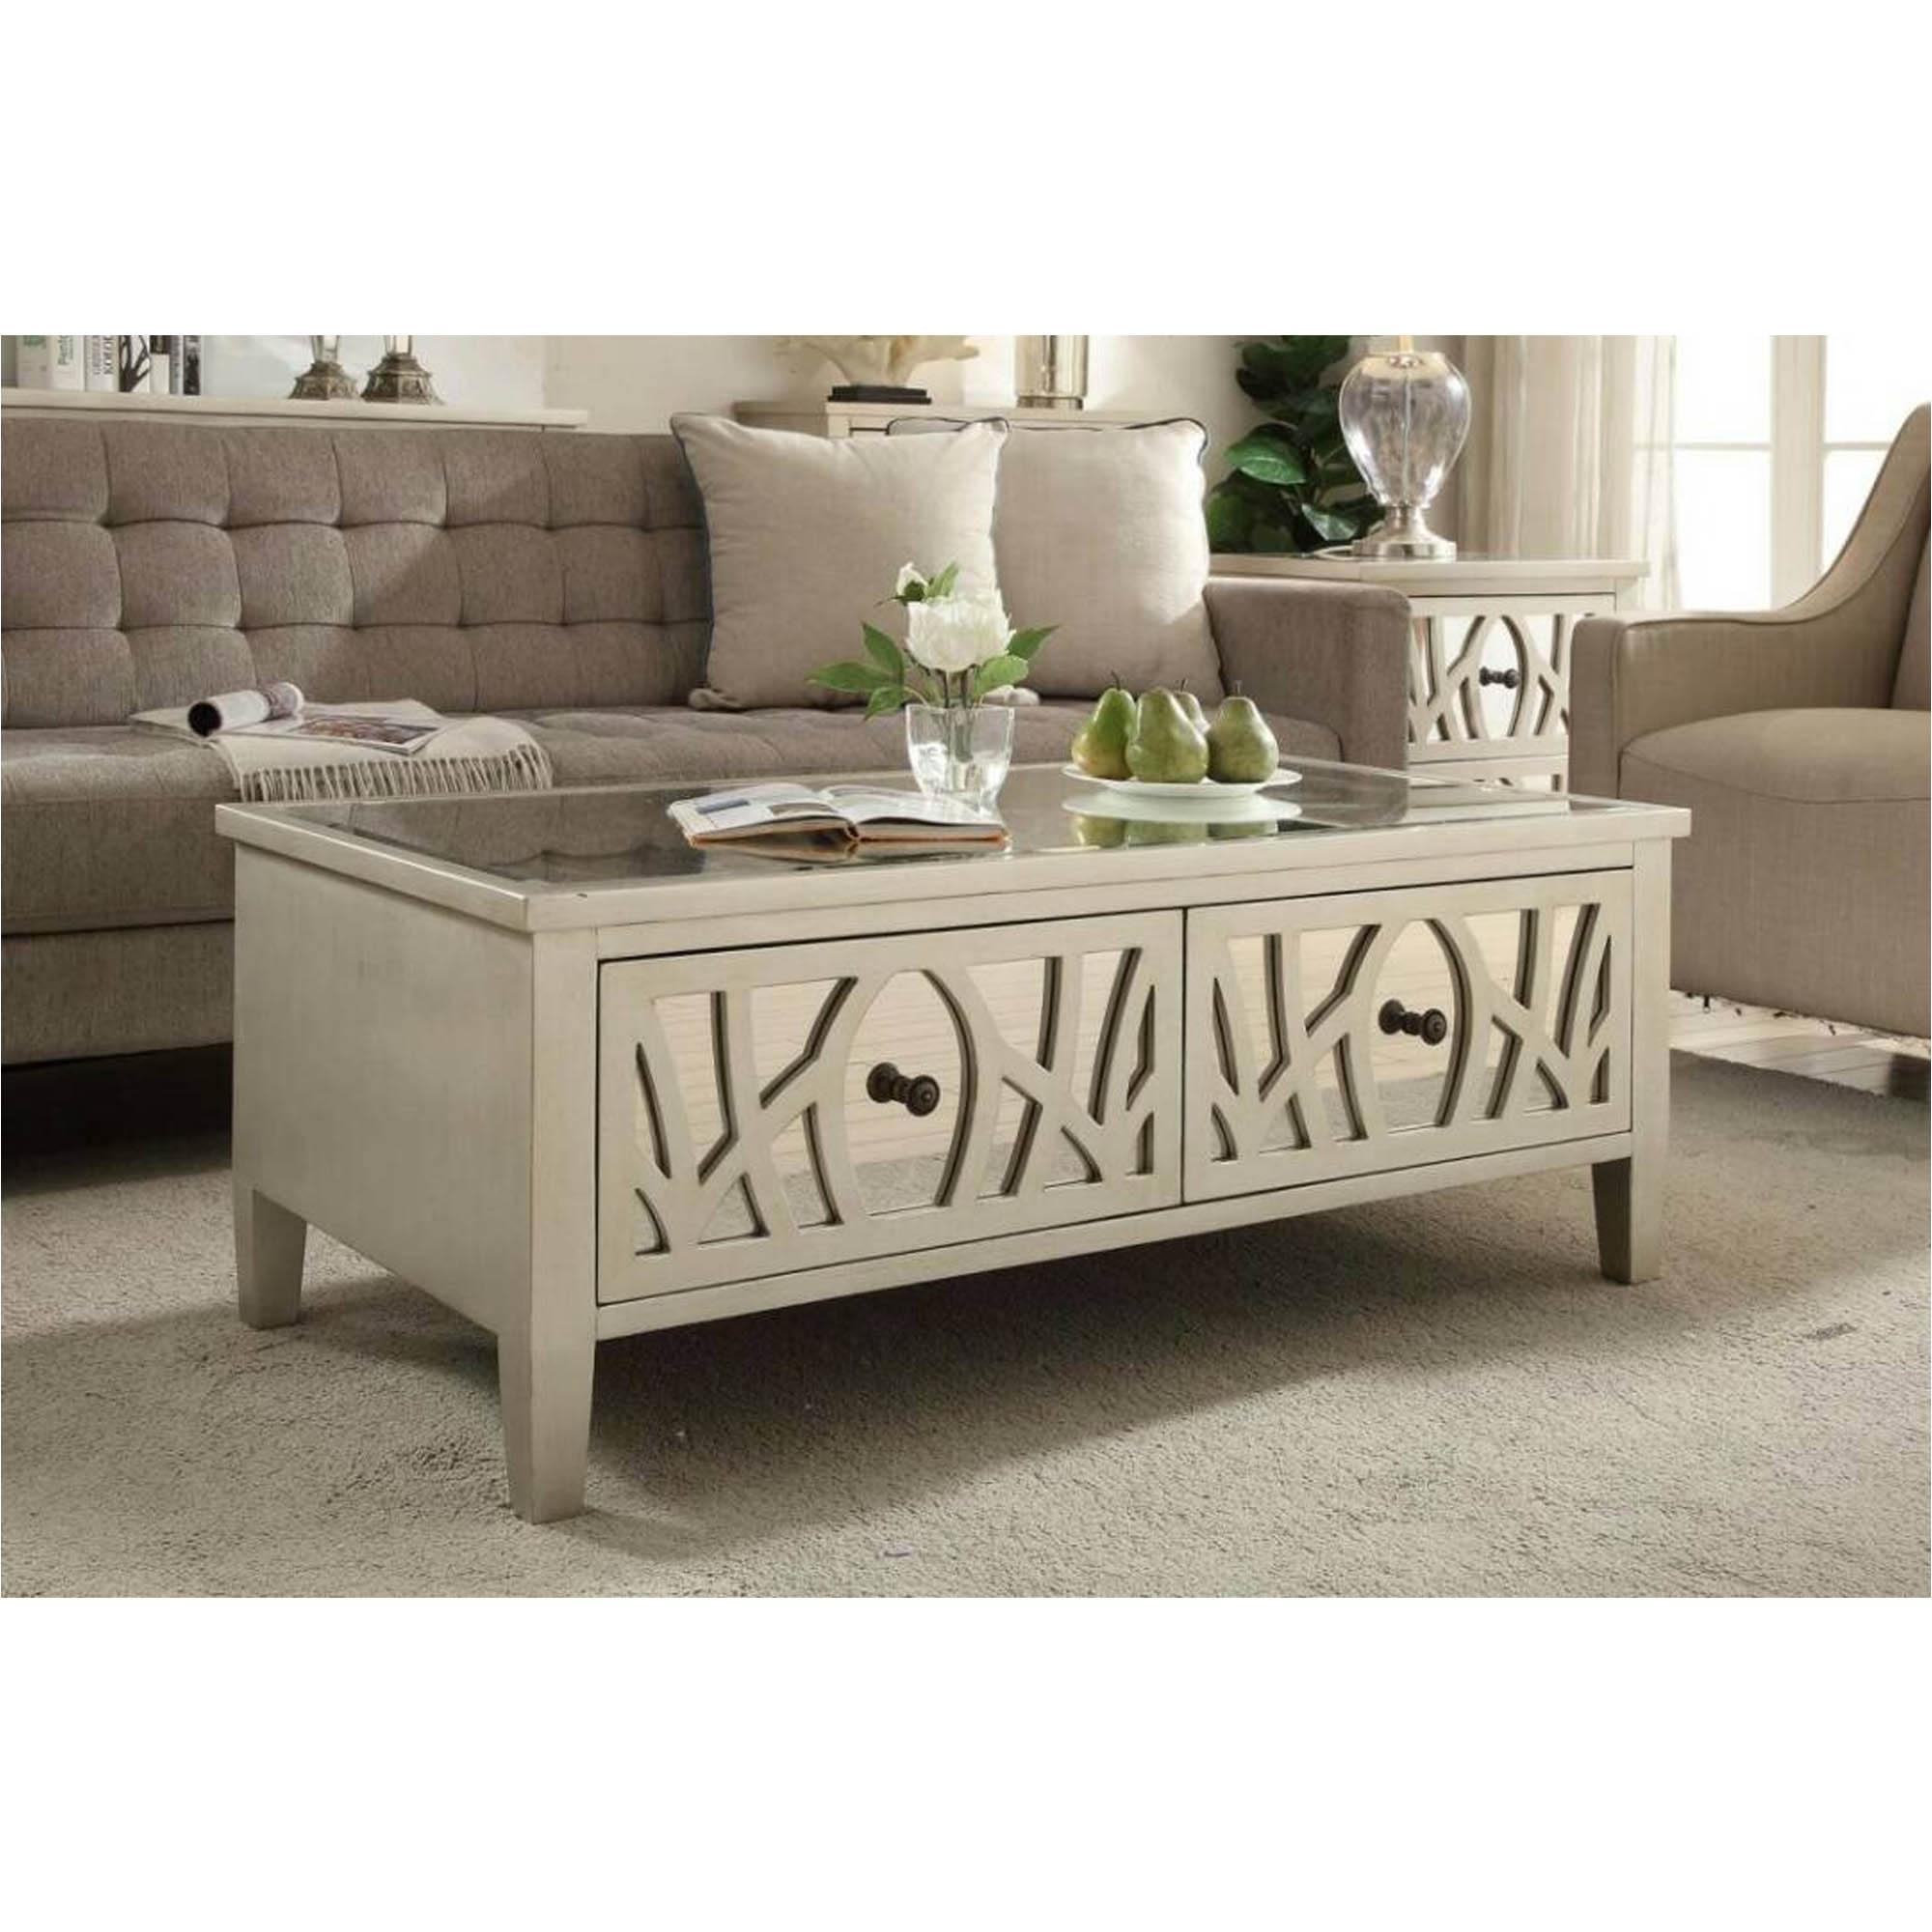 Empire Mirrored Coffee Table: Gallo Mirrored Coffee Table